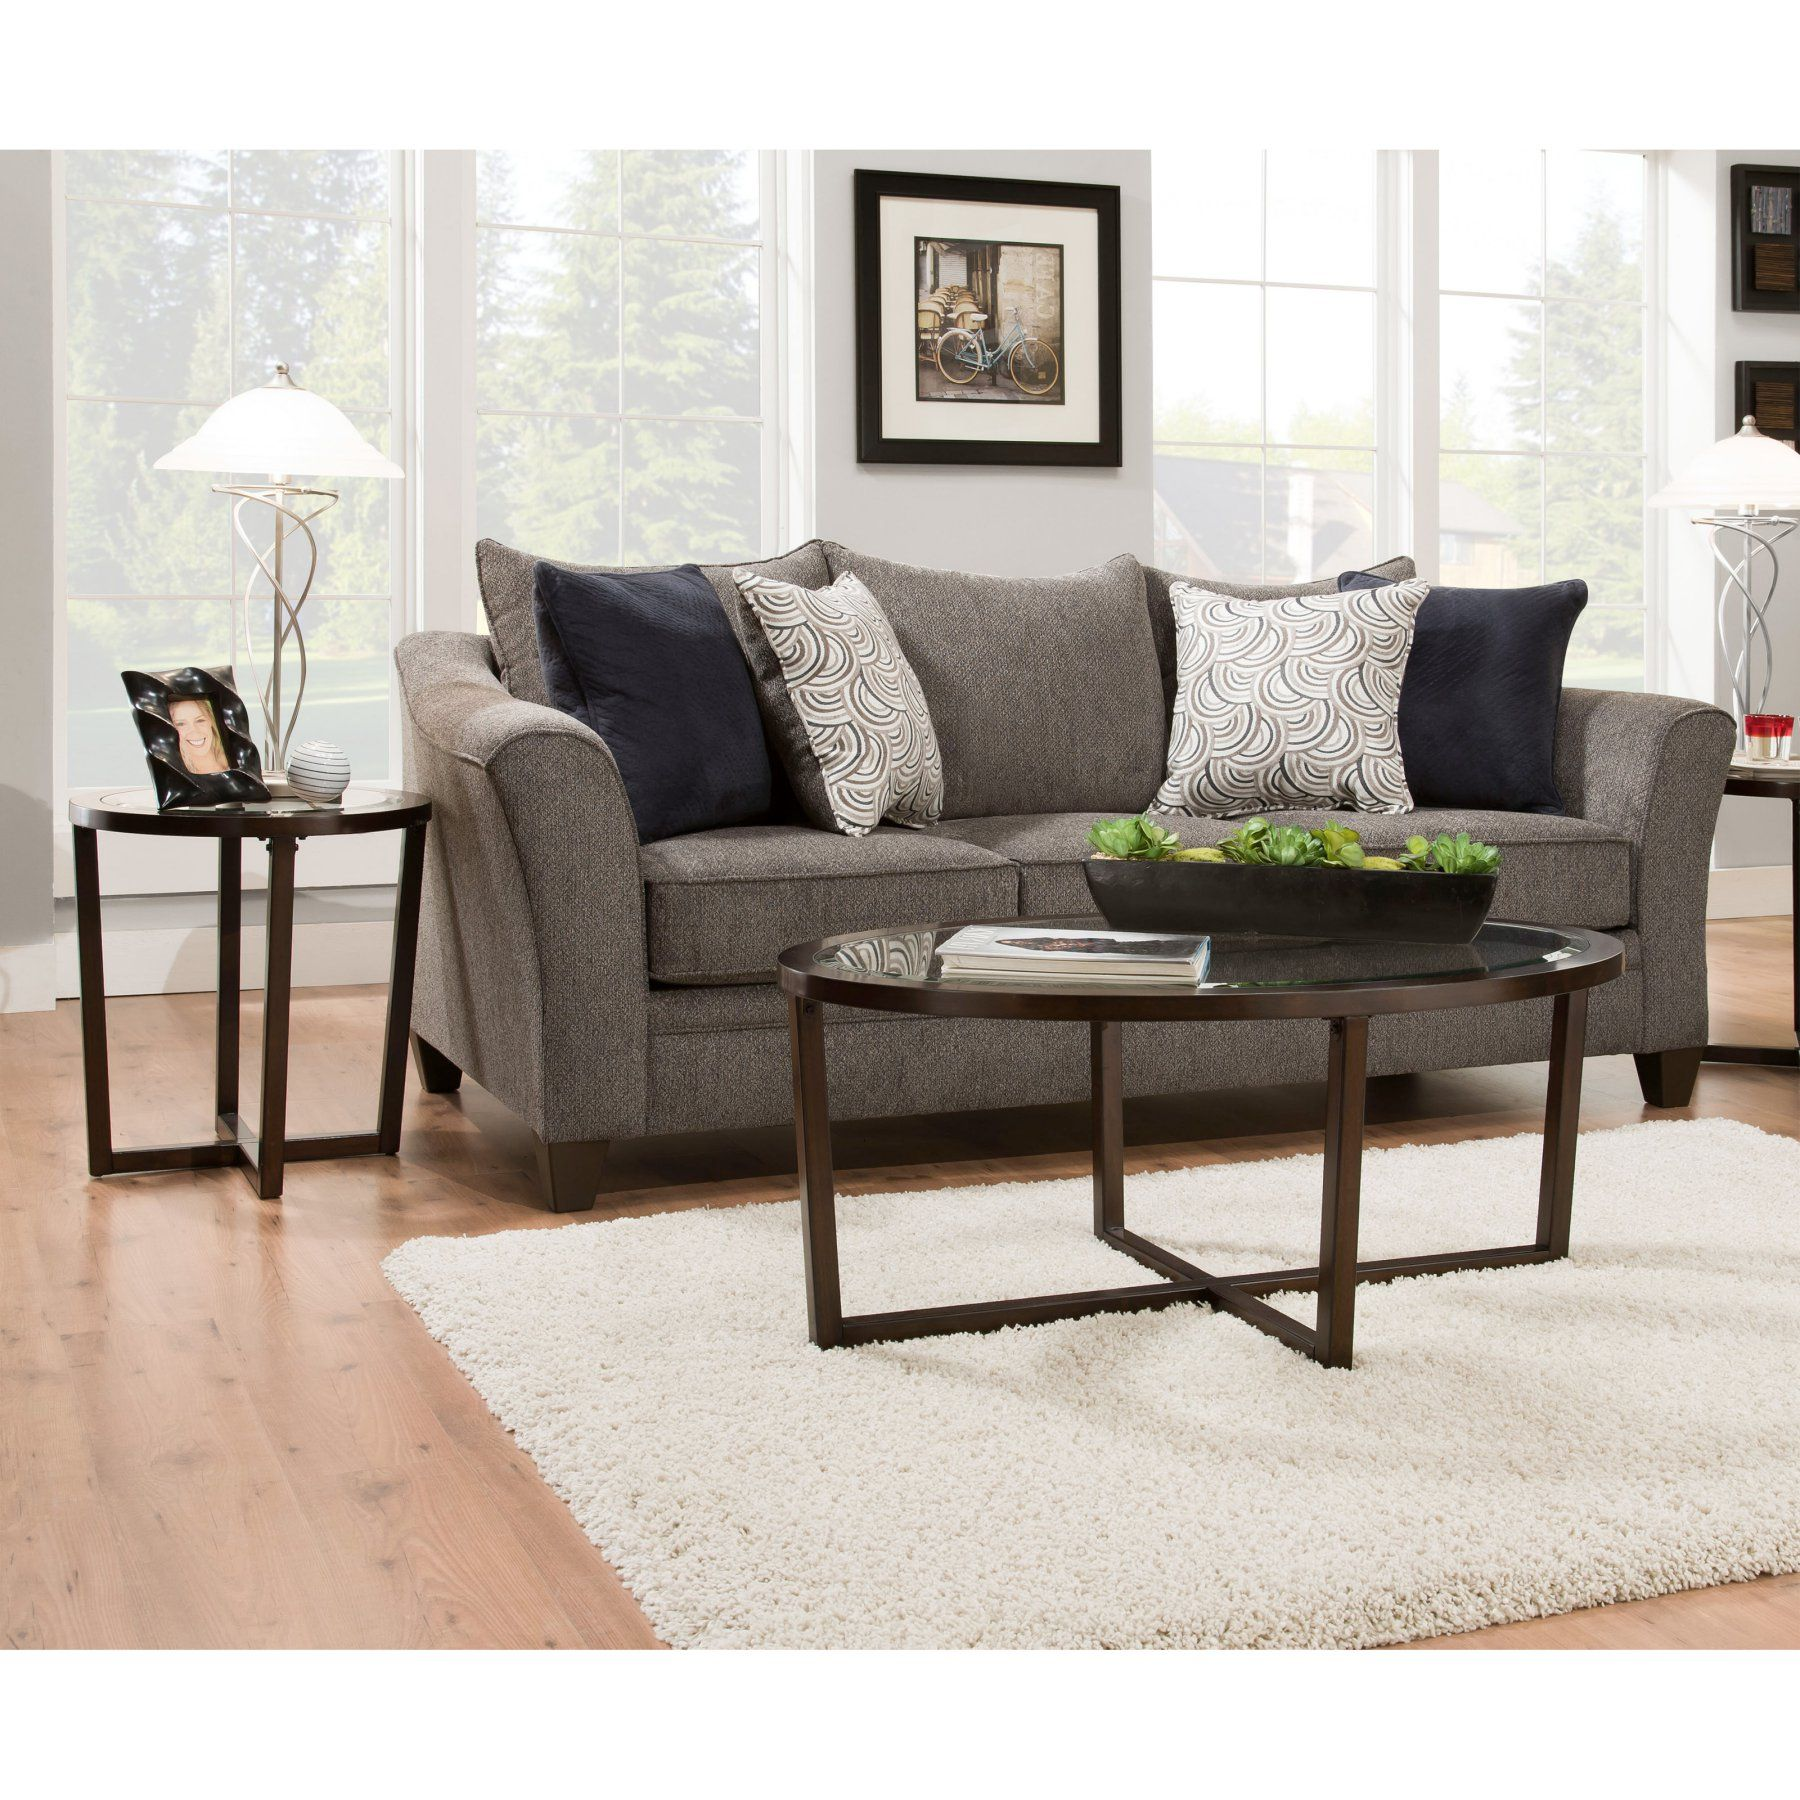 United Furniture 3 Piece Oval Coffee Table Set 7526 43